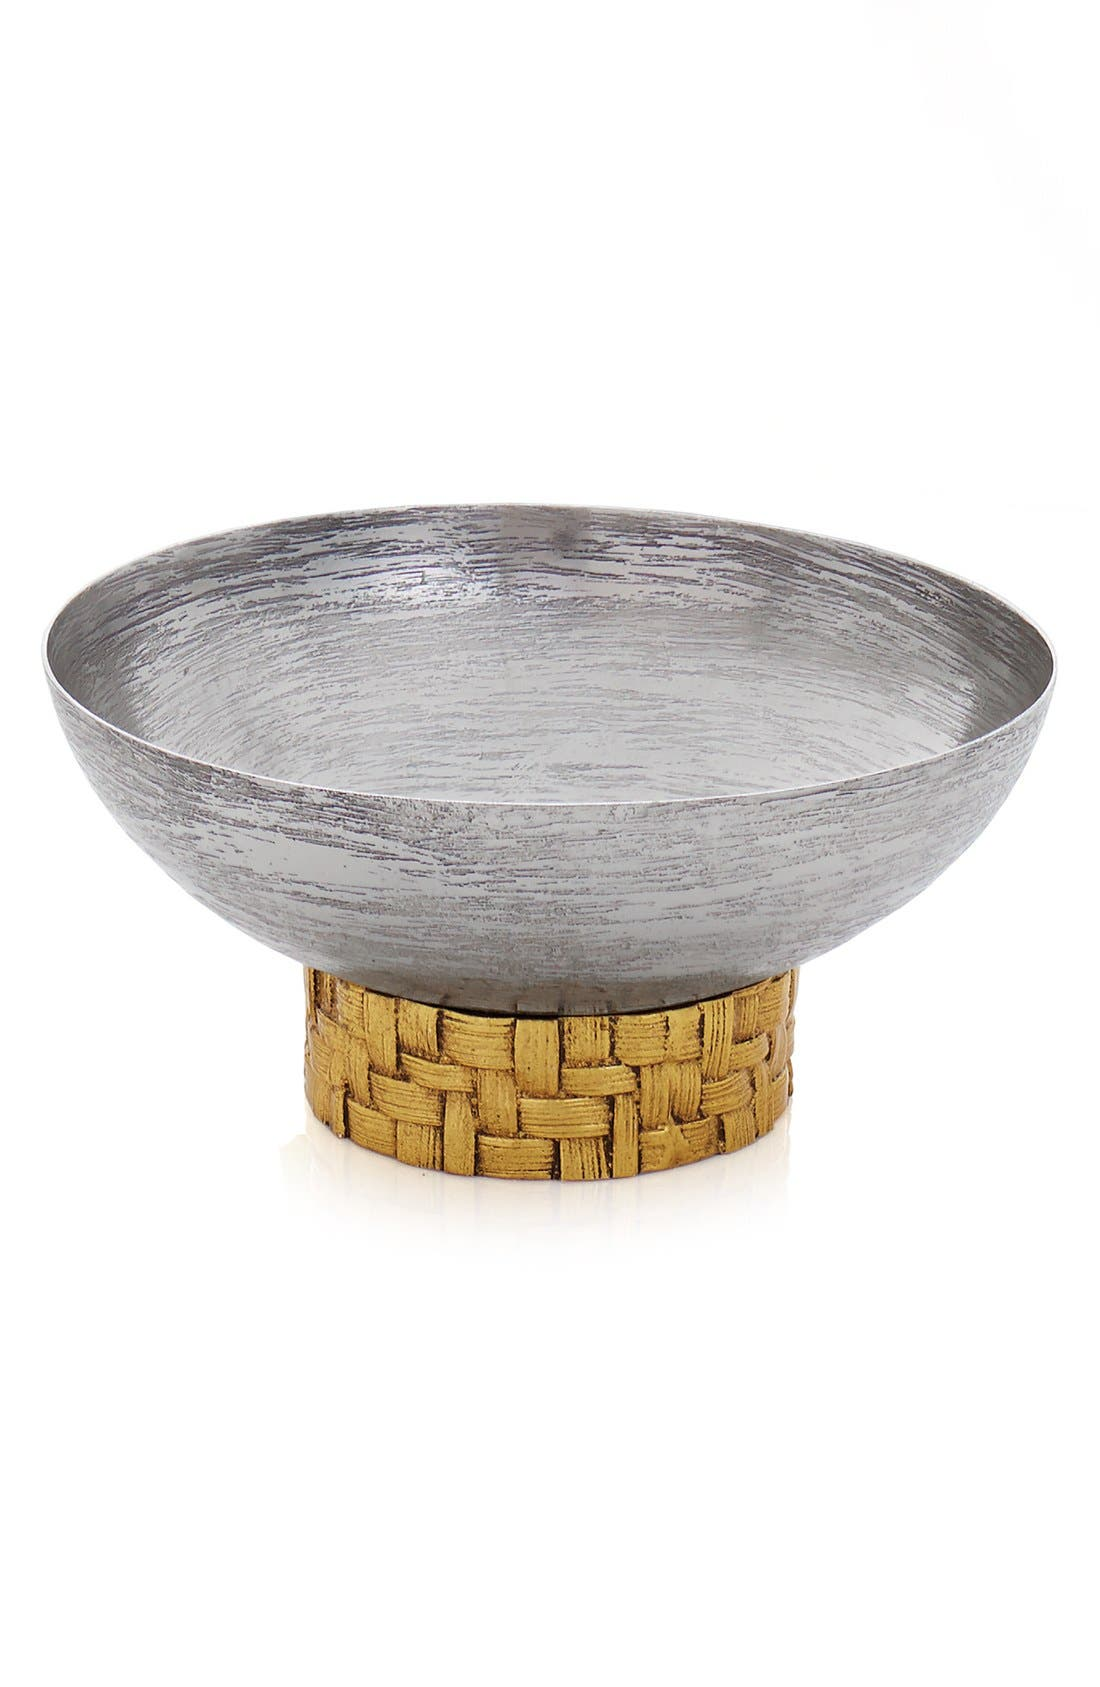 'Palm' Nut Bowl,                             Main thumbnail 1, color,                             Metallic Silver